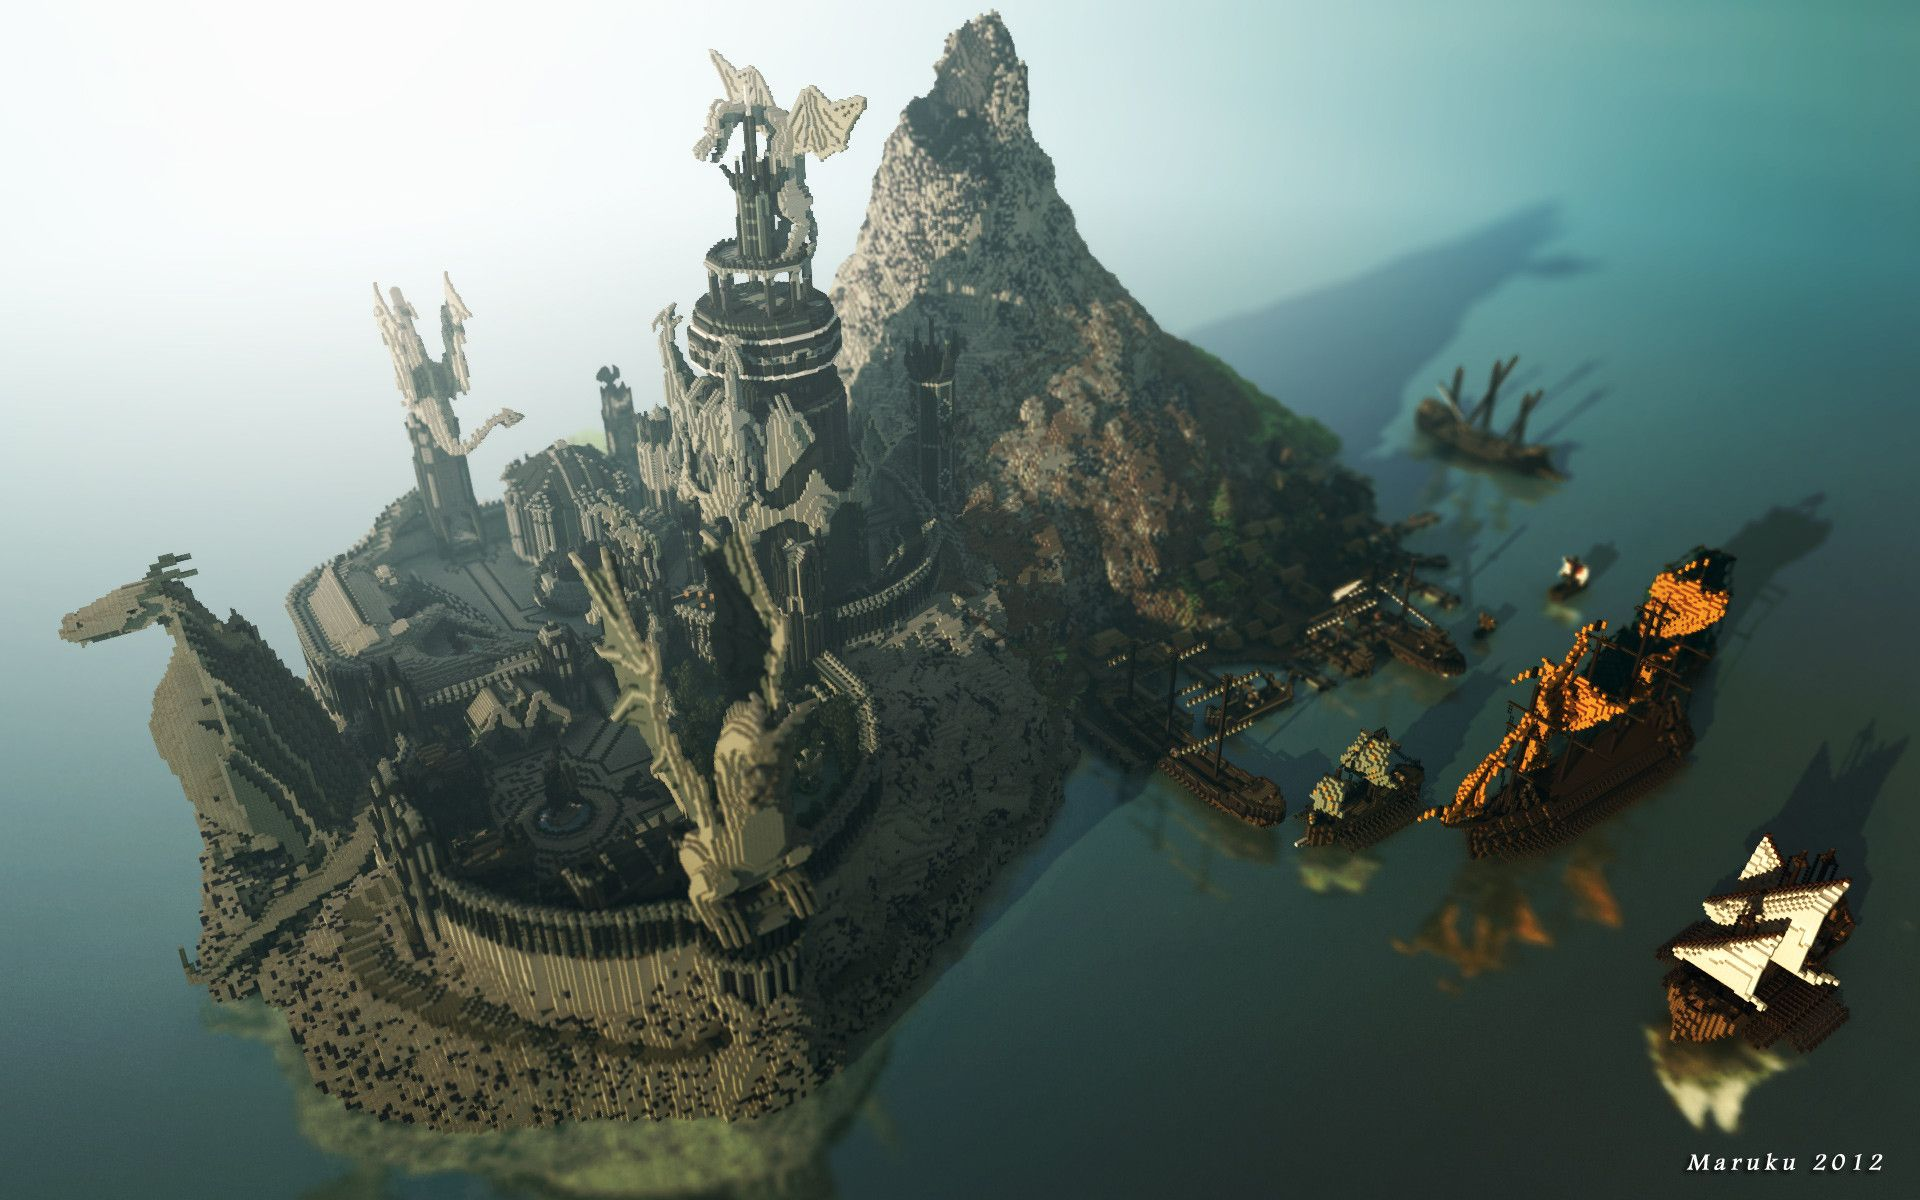 Dragonstone home of the totally serious totally sensible stannis dragonstone home of the totally serious totally sensible stannis baratheon except when it comes to cults and crazy fire priestesses gumiabroncs Choice Image